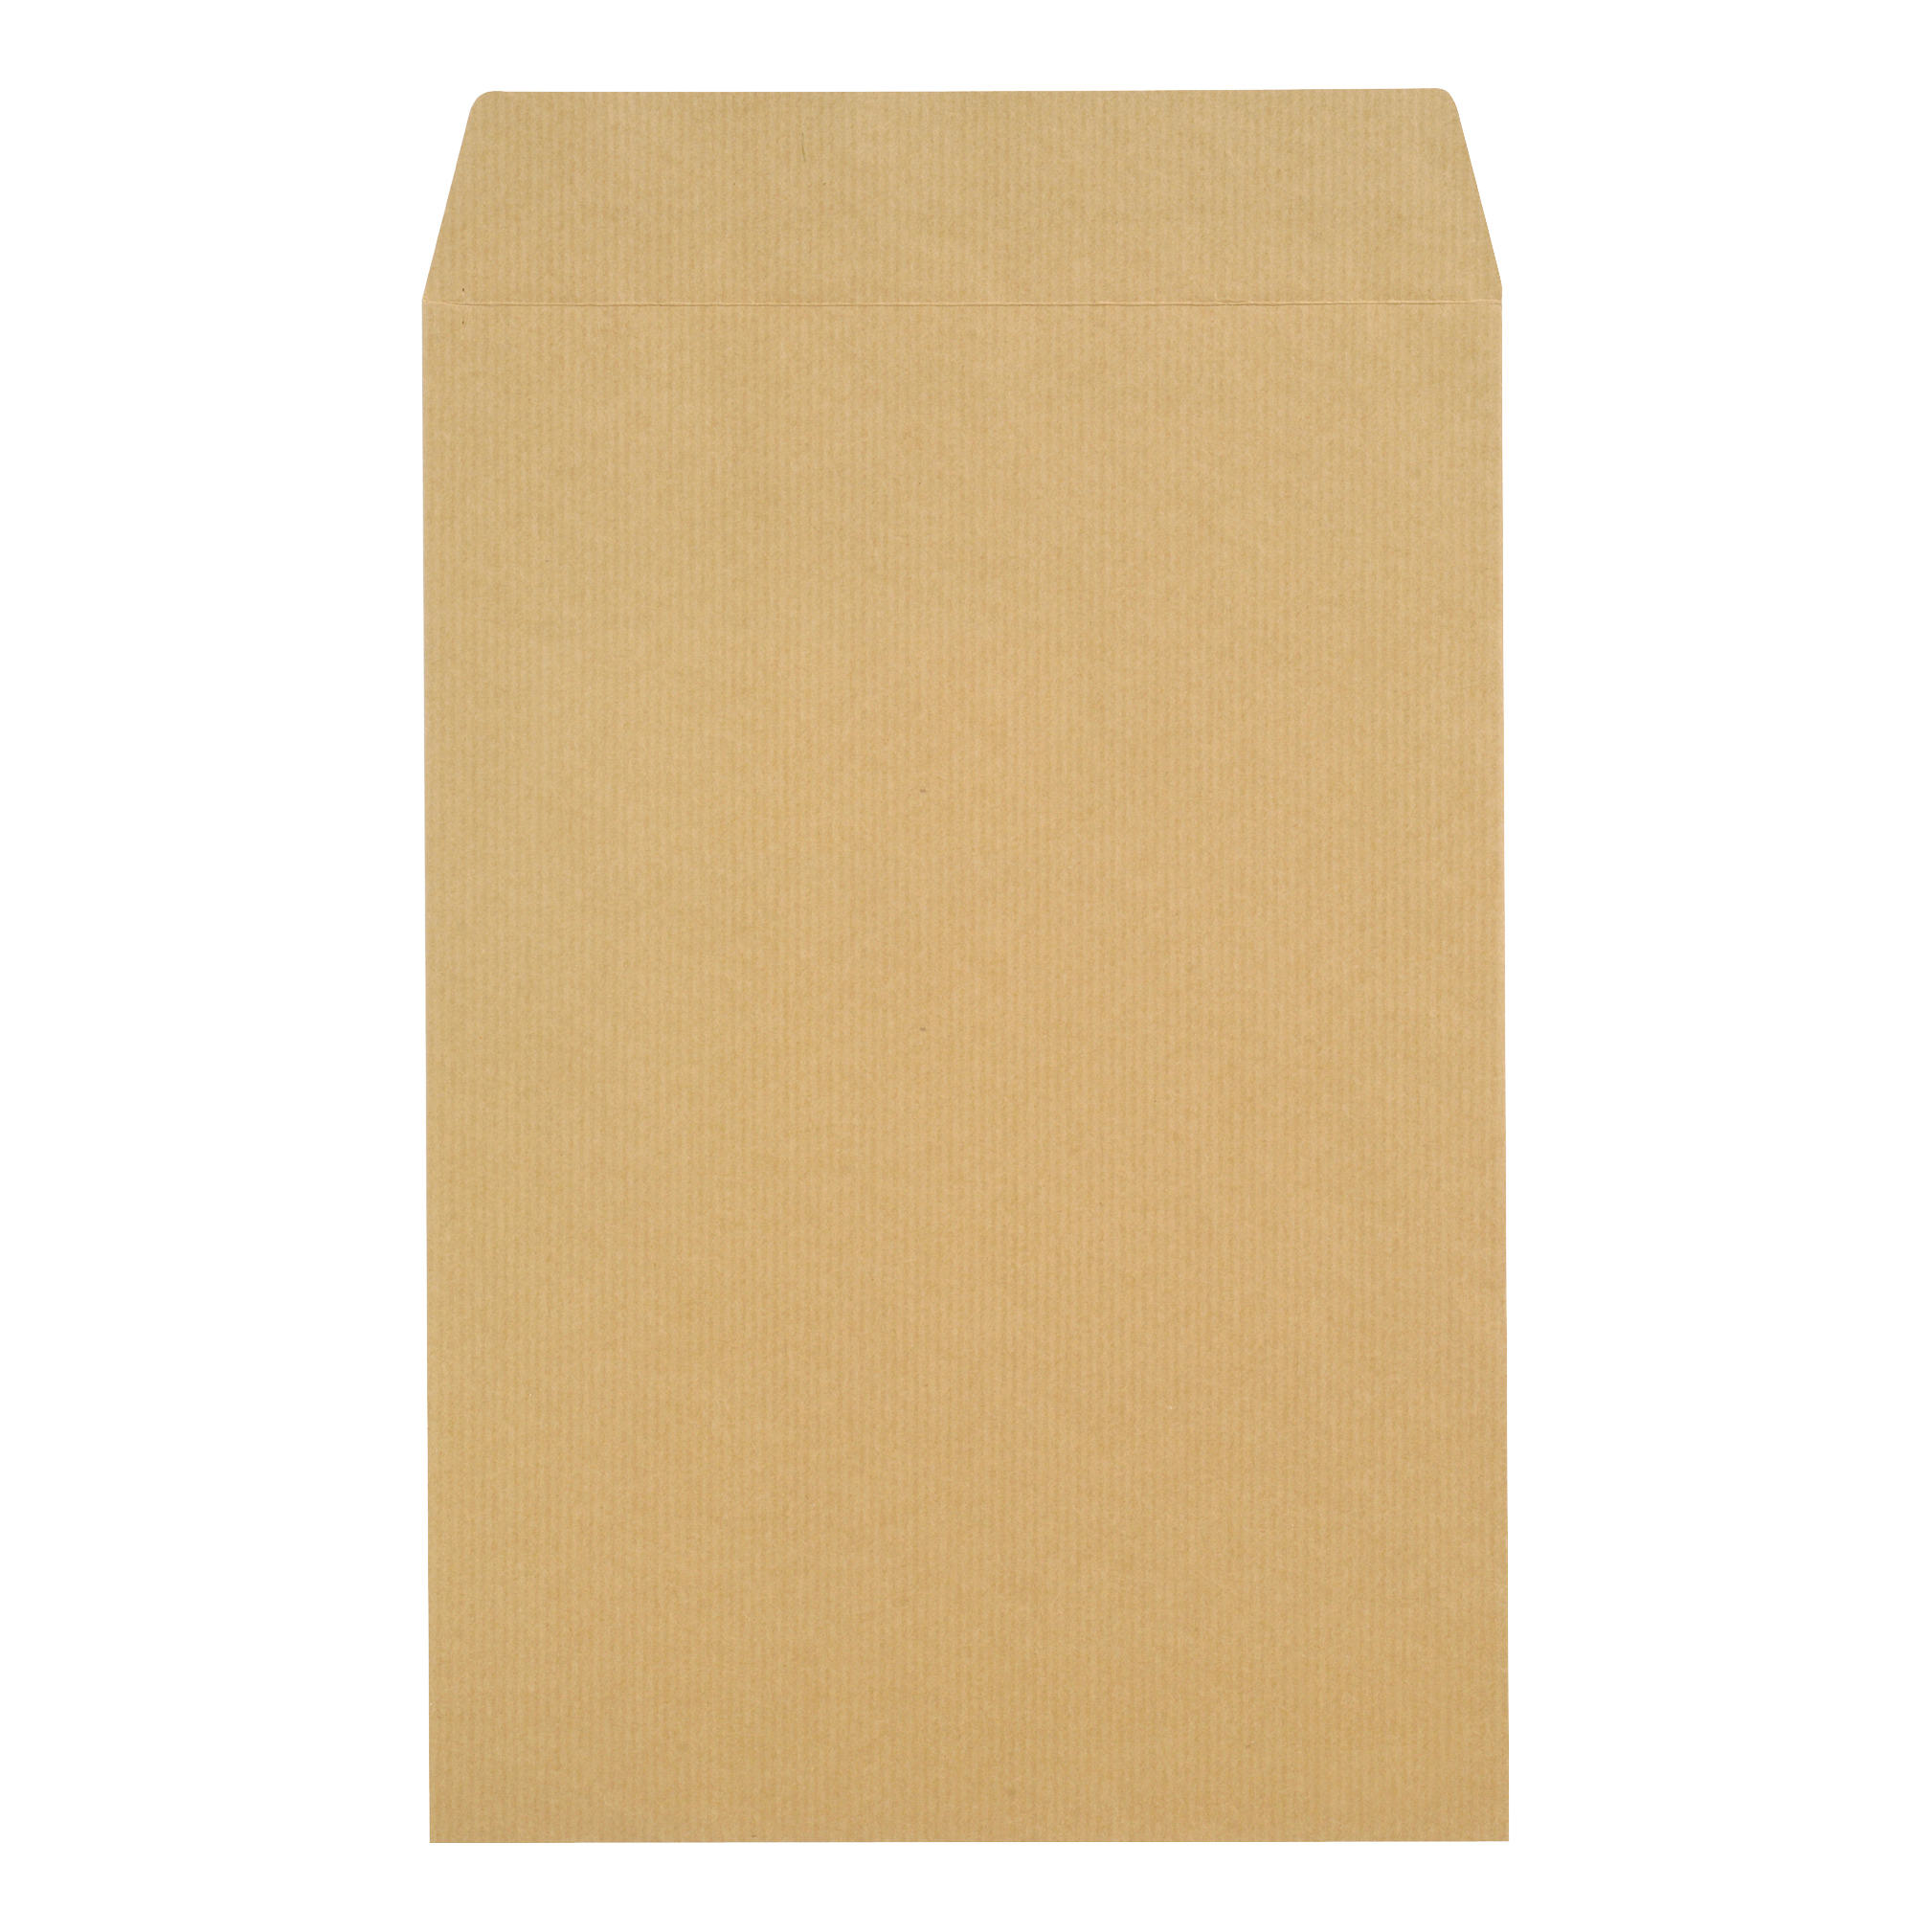 New Guardian Envelopes C4 Pocket Self Seal 130gsm Manilla Ref  [Pack 250]